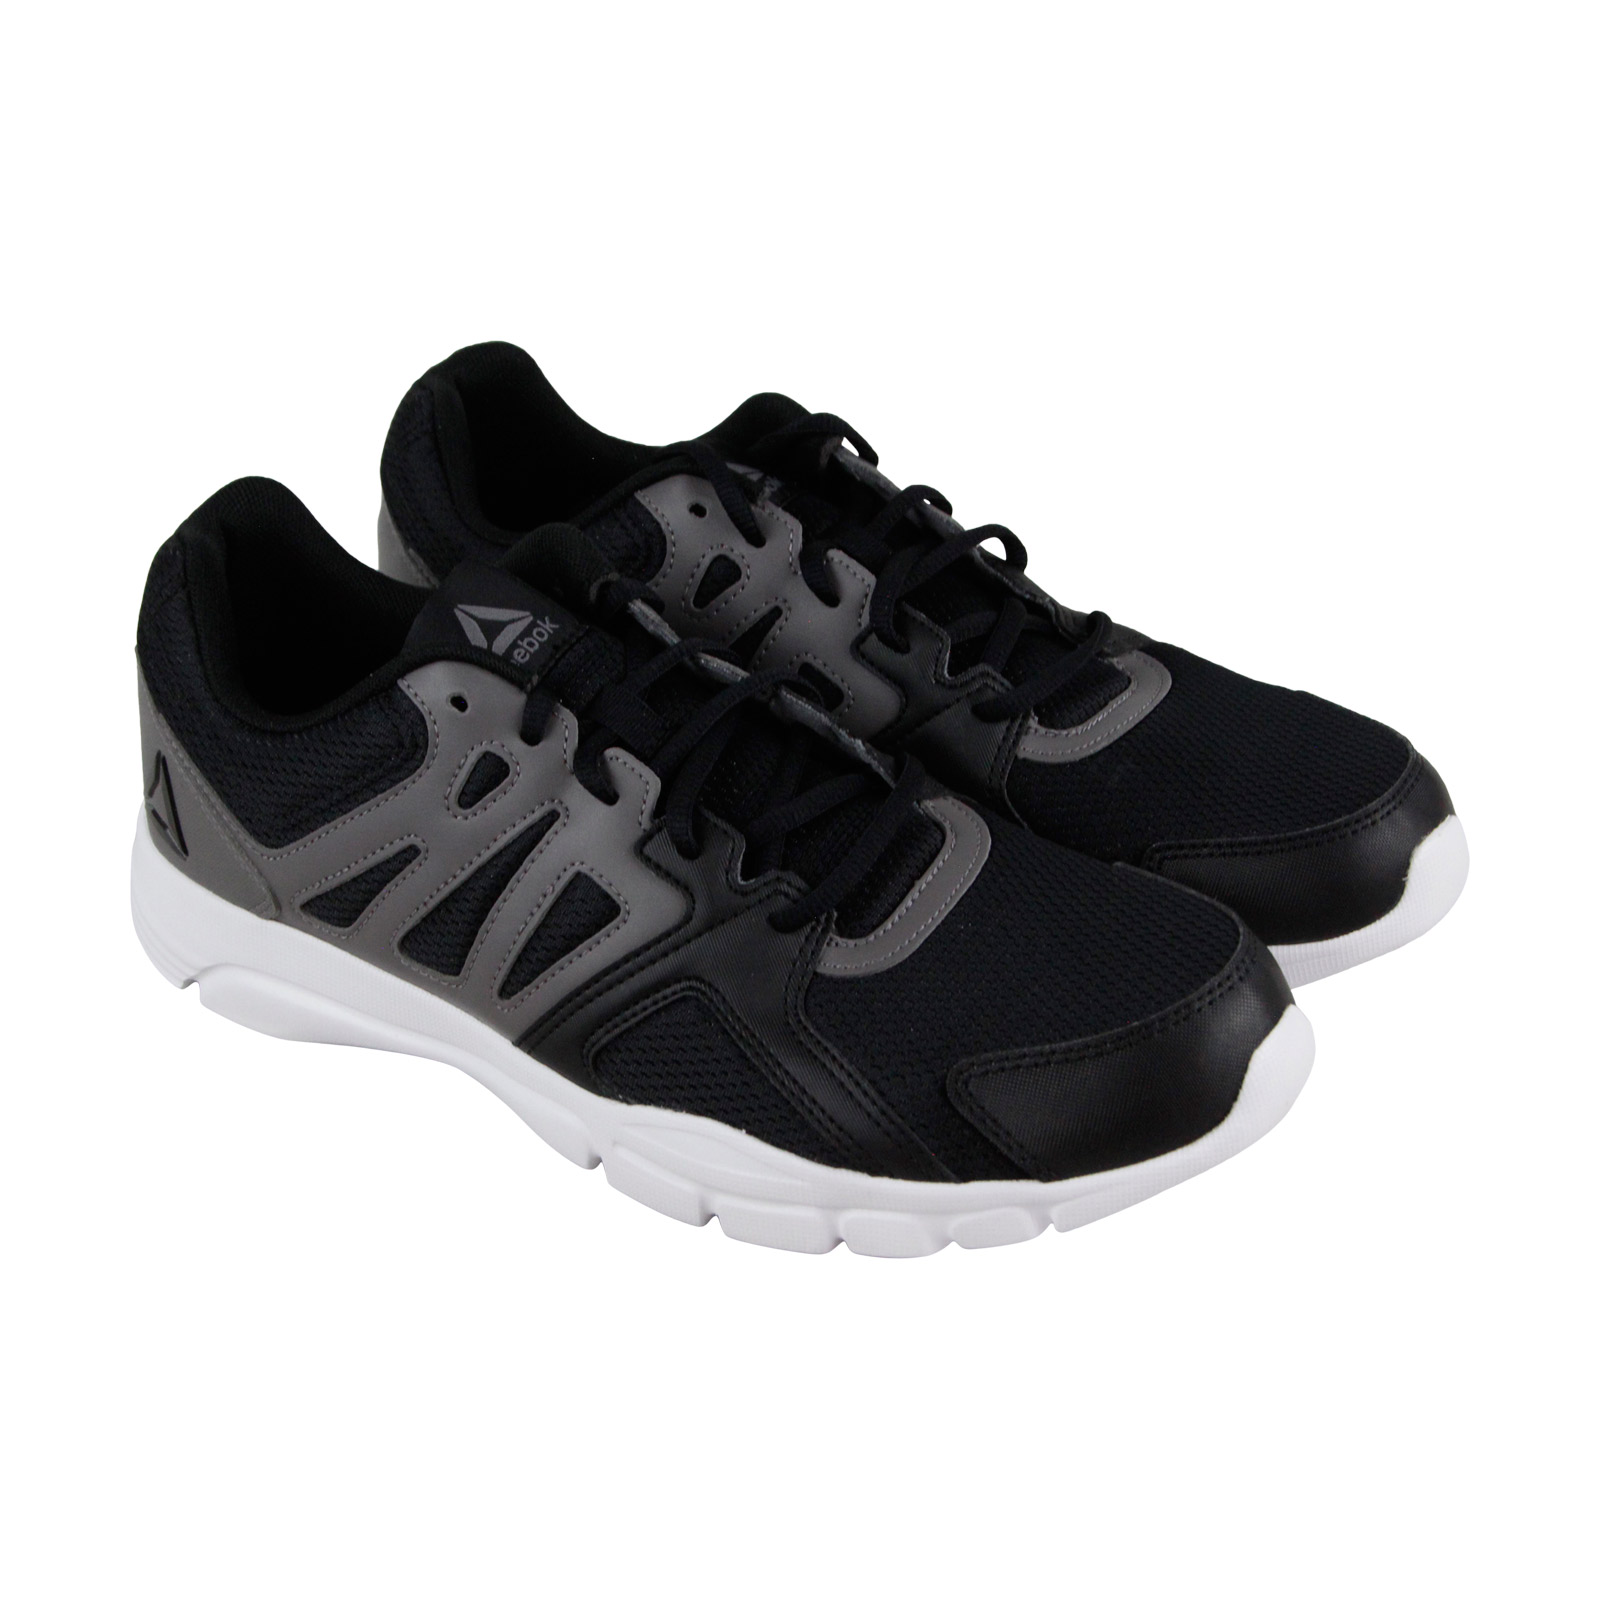 e90b91b119271b Details about Reebok Trainfusion Nine 3.0 Mens Black Mesh Athletic Lace Up  Running Shoes